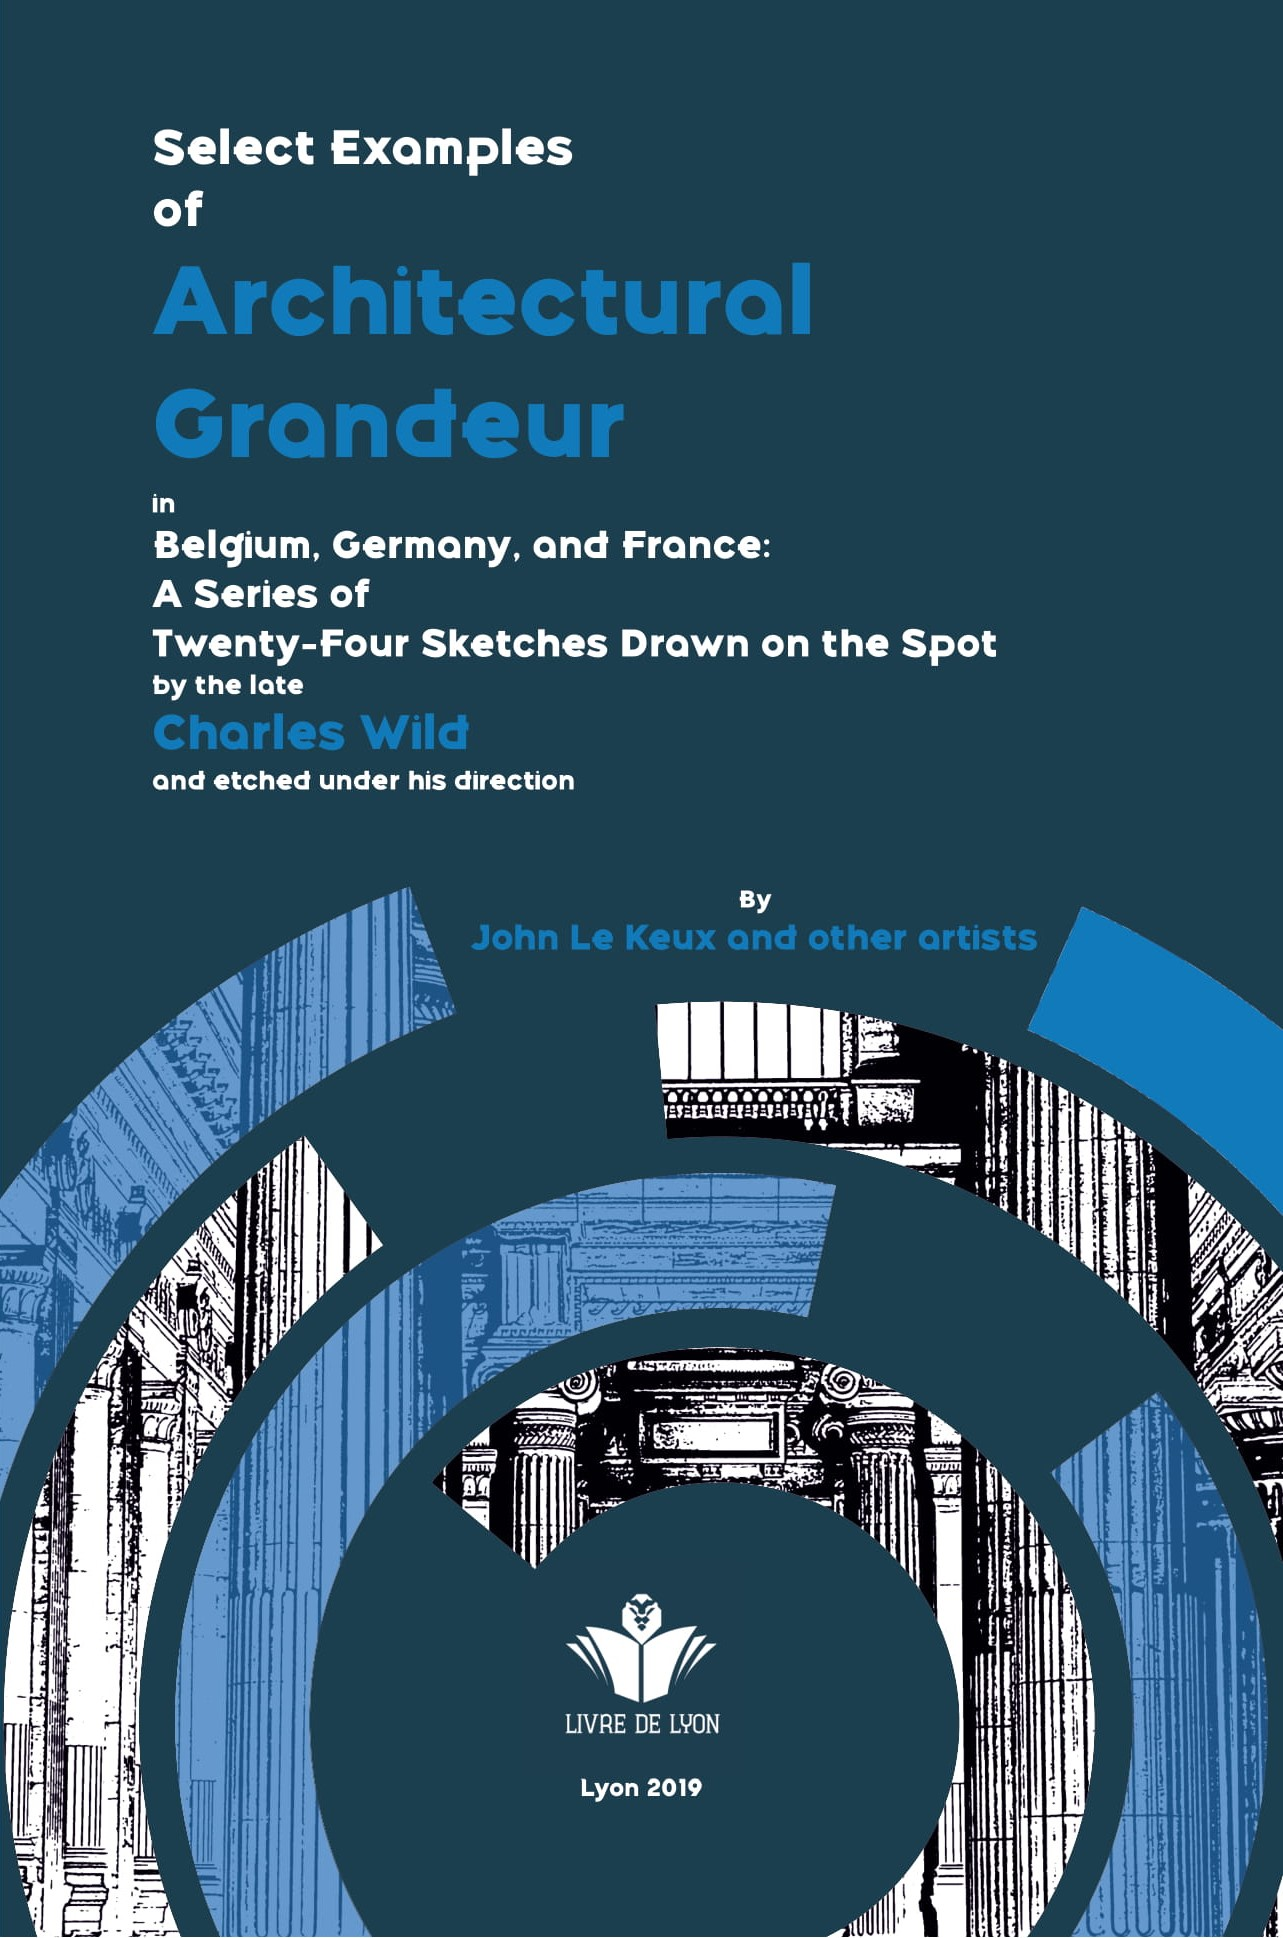 Select Examples of Architectural Grandeur in Belgium, Germany, and France: A Series of Twenty-Four Sketches Drawn on the Spot